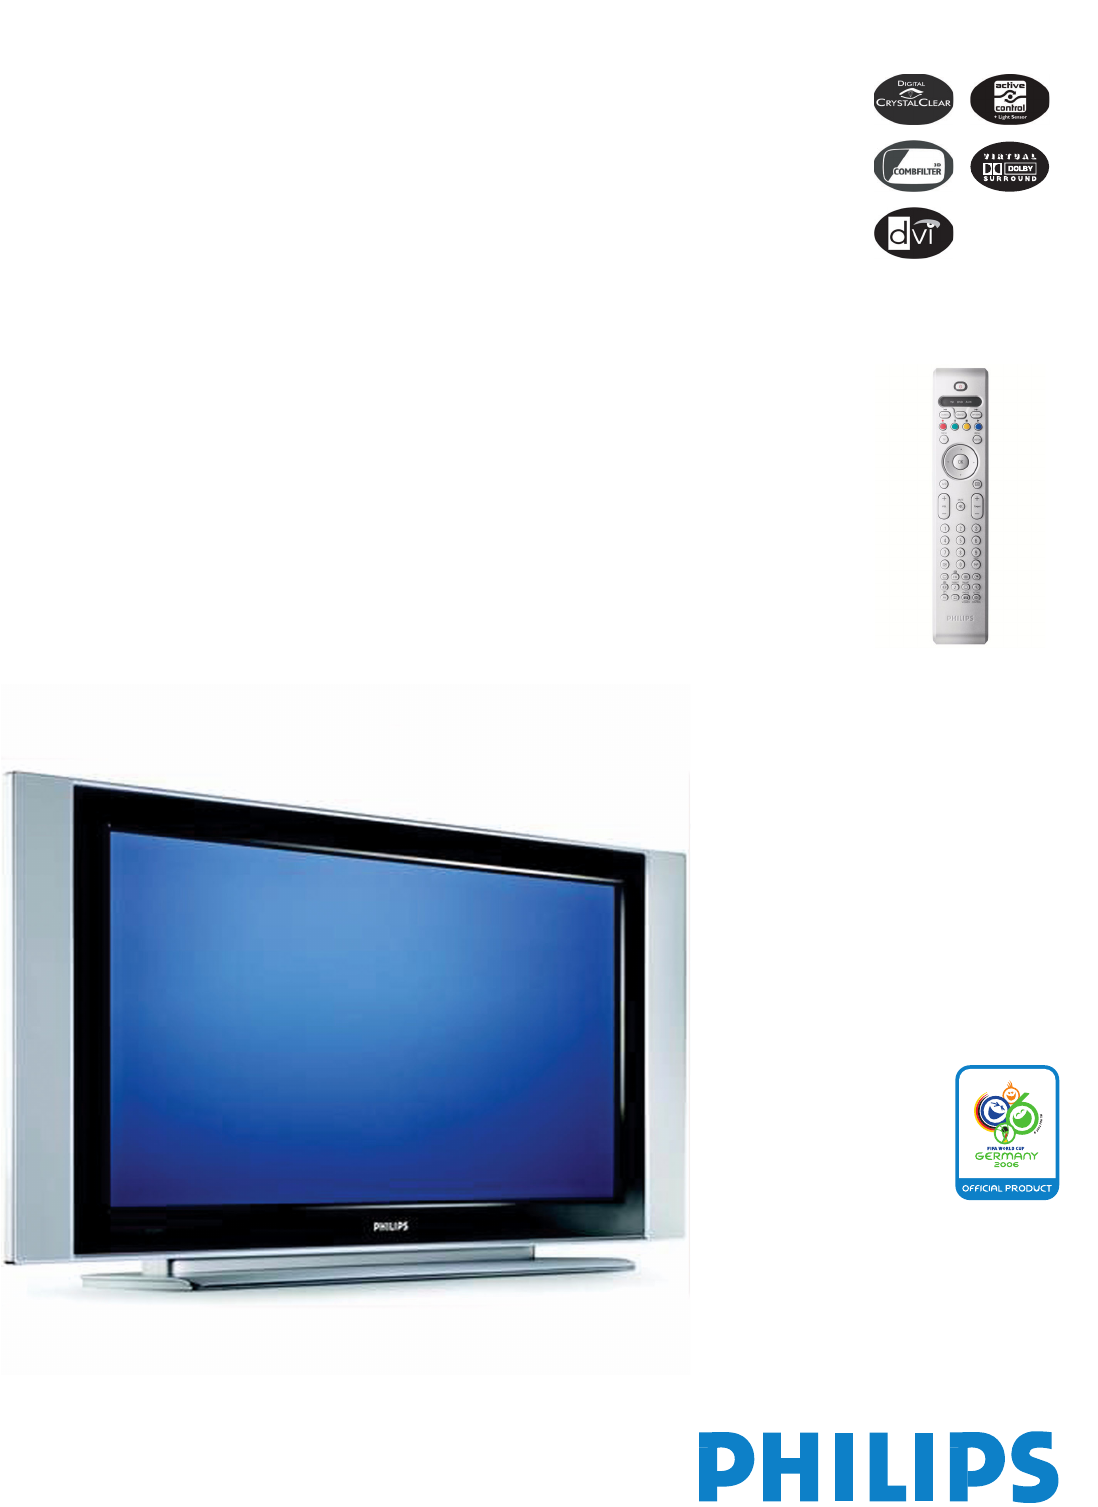 Philips 42PF5520D Flat Panel Television User Manual